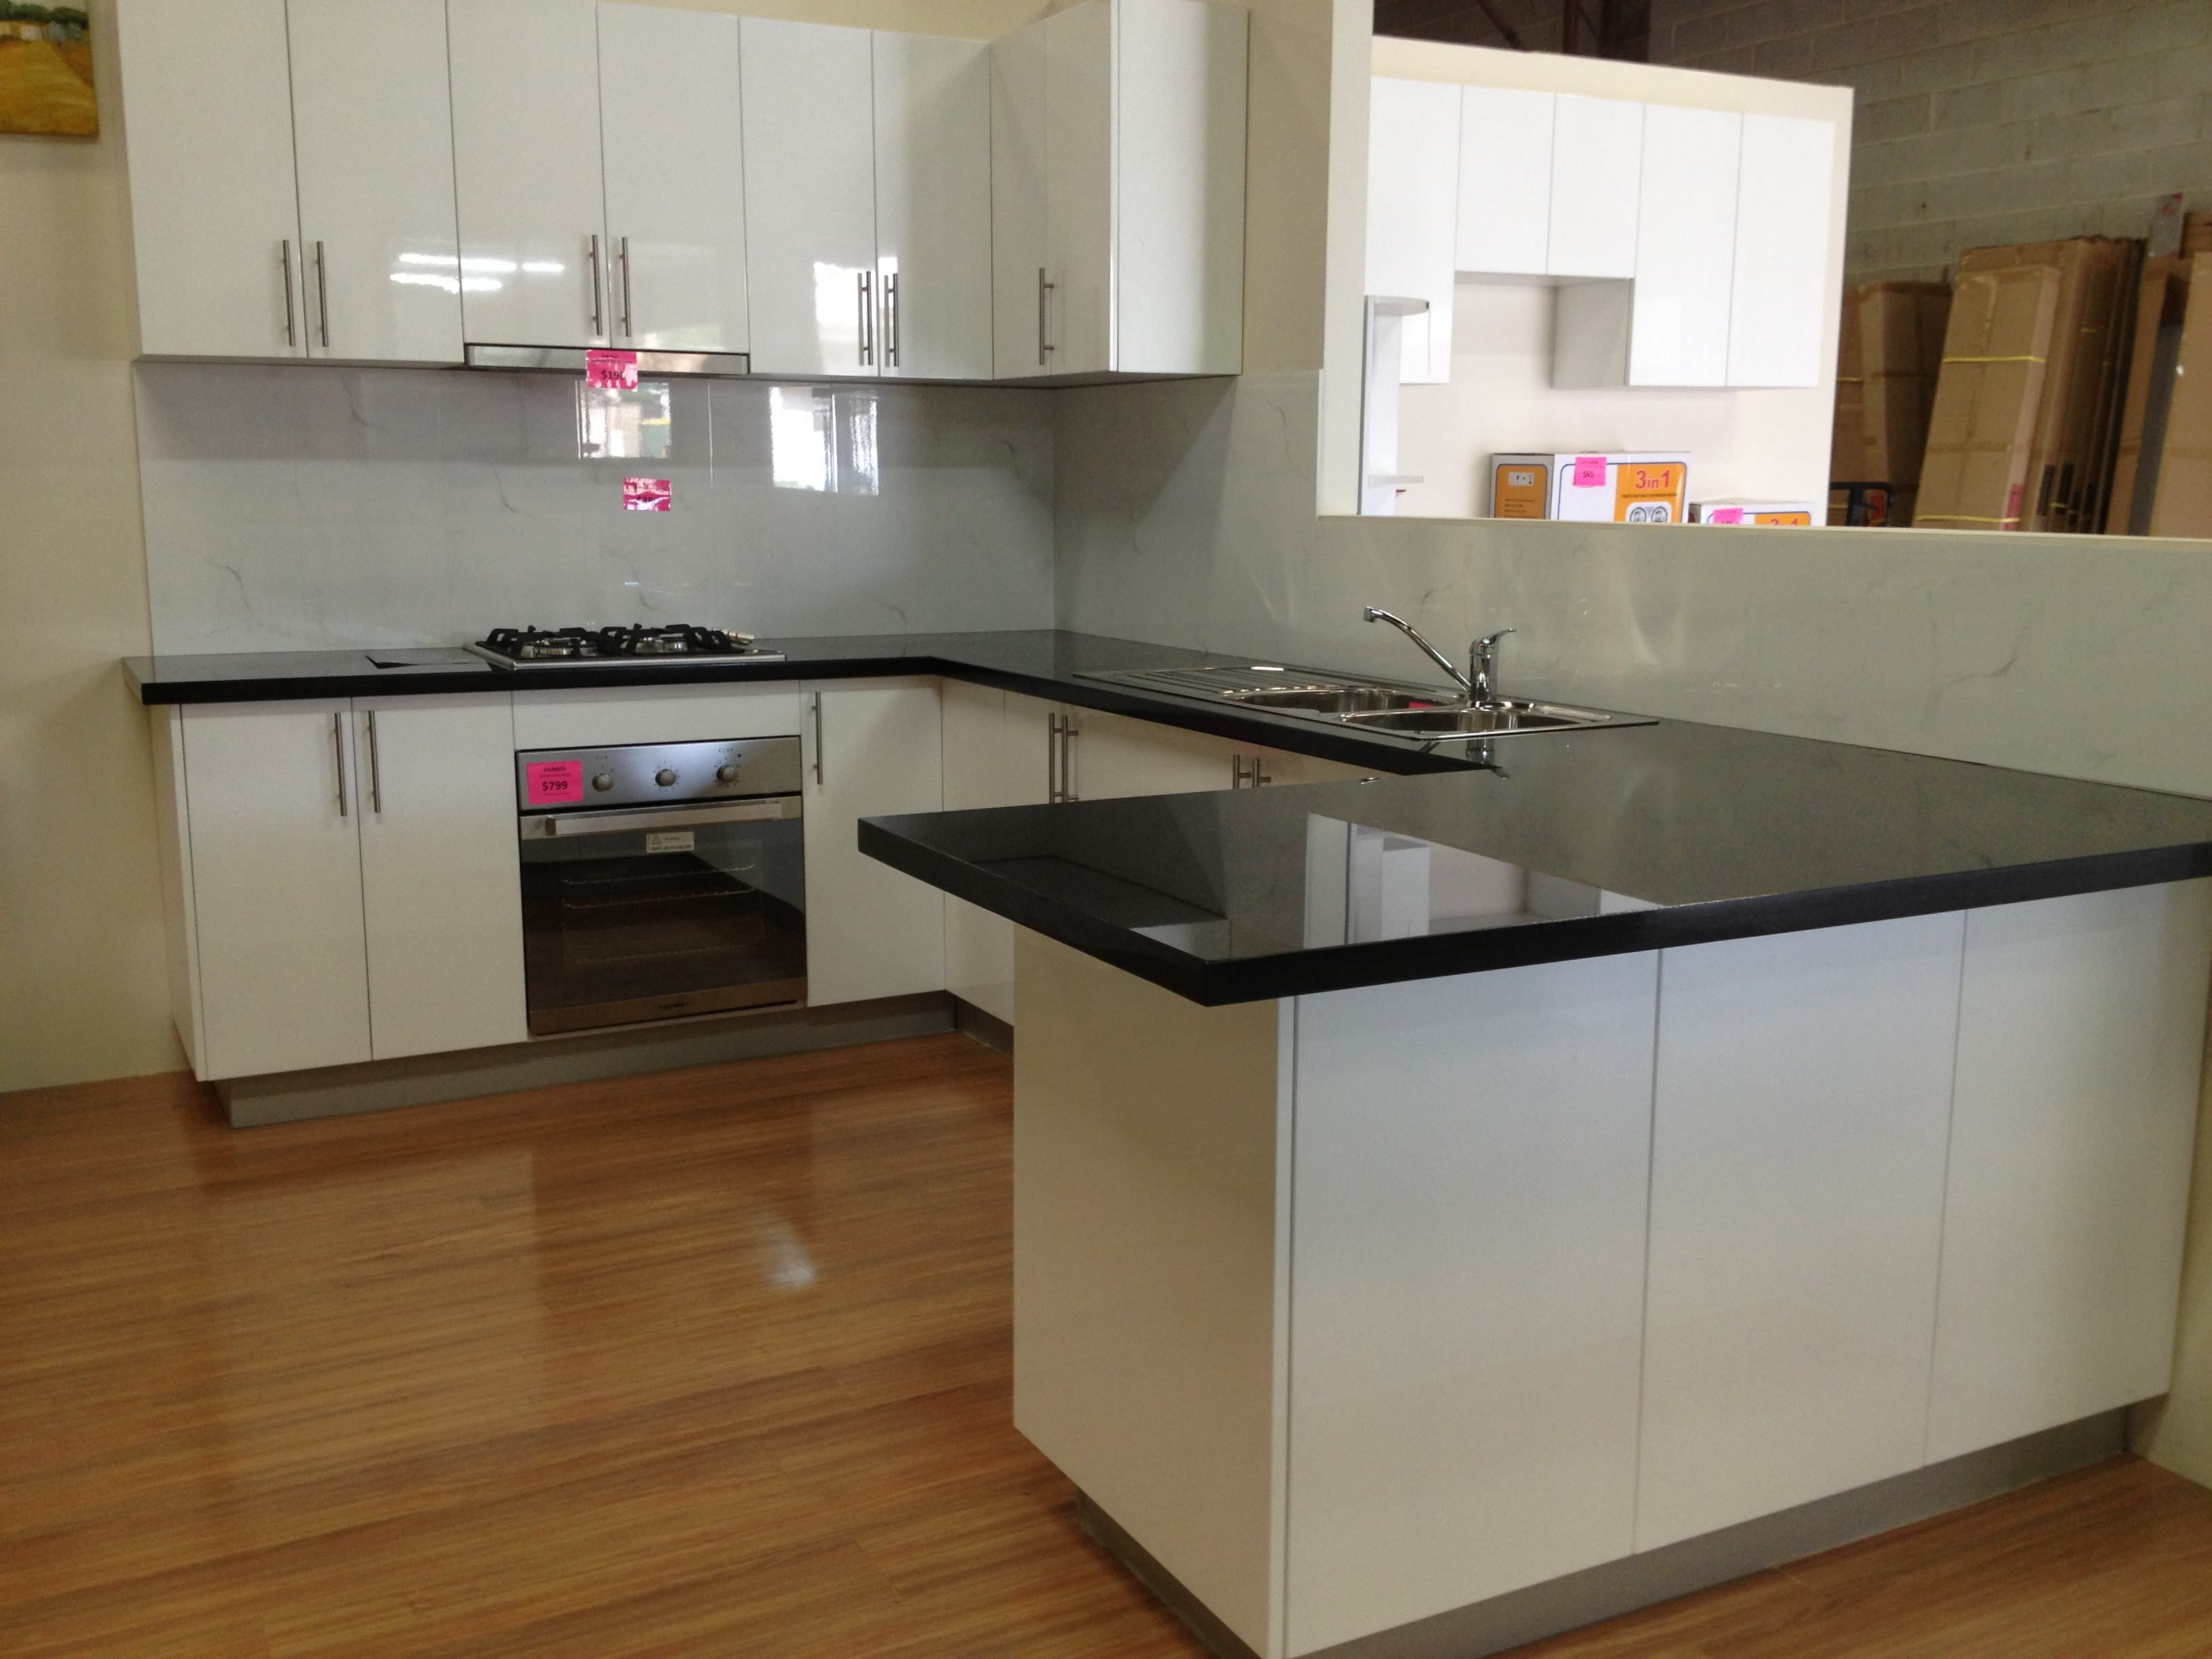 OUR CONTEMPORARY KITCHEN DESIGNS AND COMMITMENT TO QUALITY, CRAFTMANSHIP  AND CUSTOMER CARE MAKES US UNIQUE